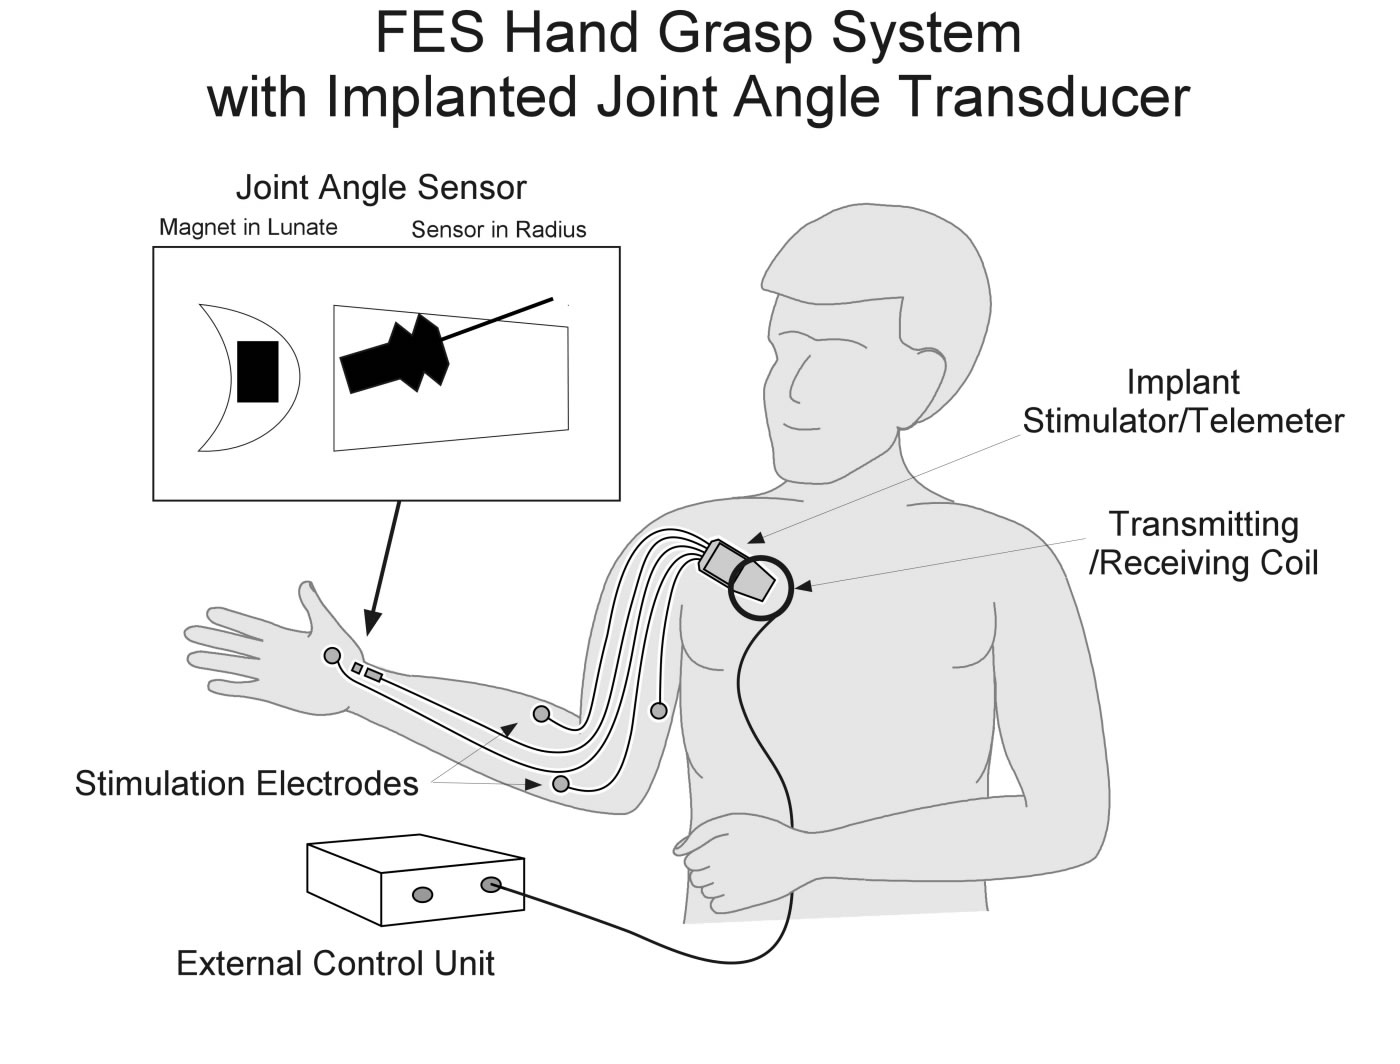 Implementation Of An Implantable Joint Angle Transducer Figure 1 Block Diagram The Emg Sensor Fes Hand Grasp System With Implanted Sensors Schematic